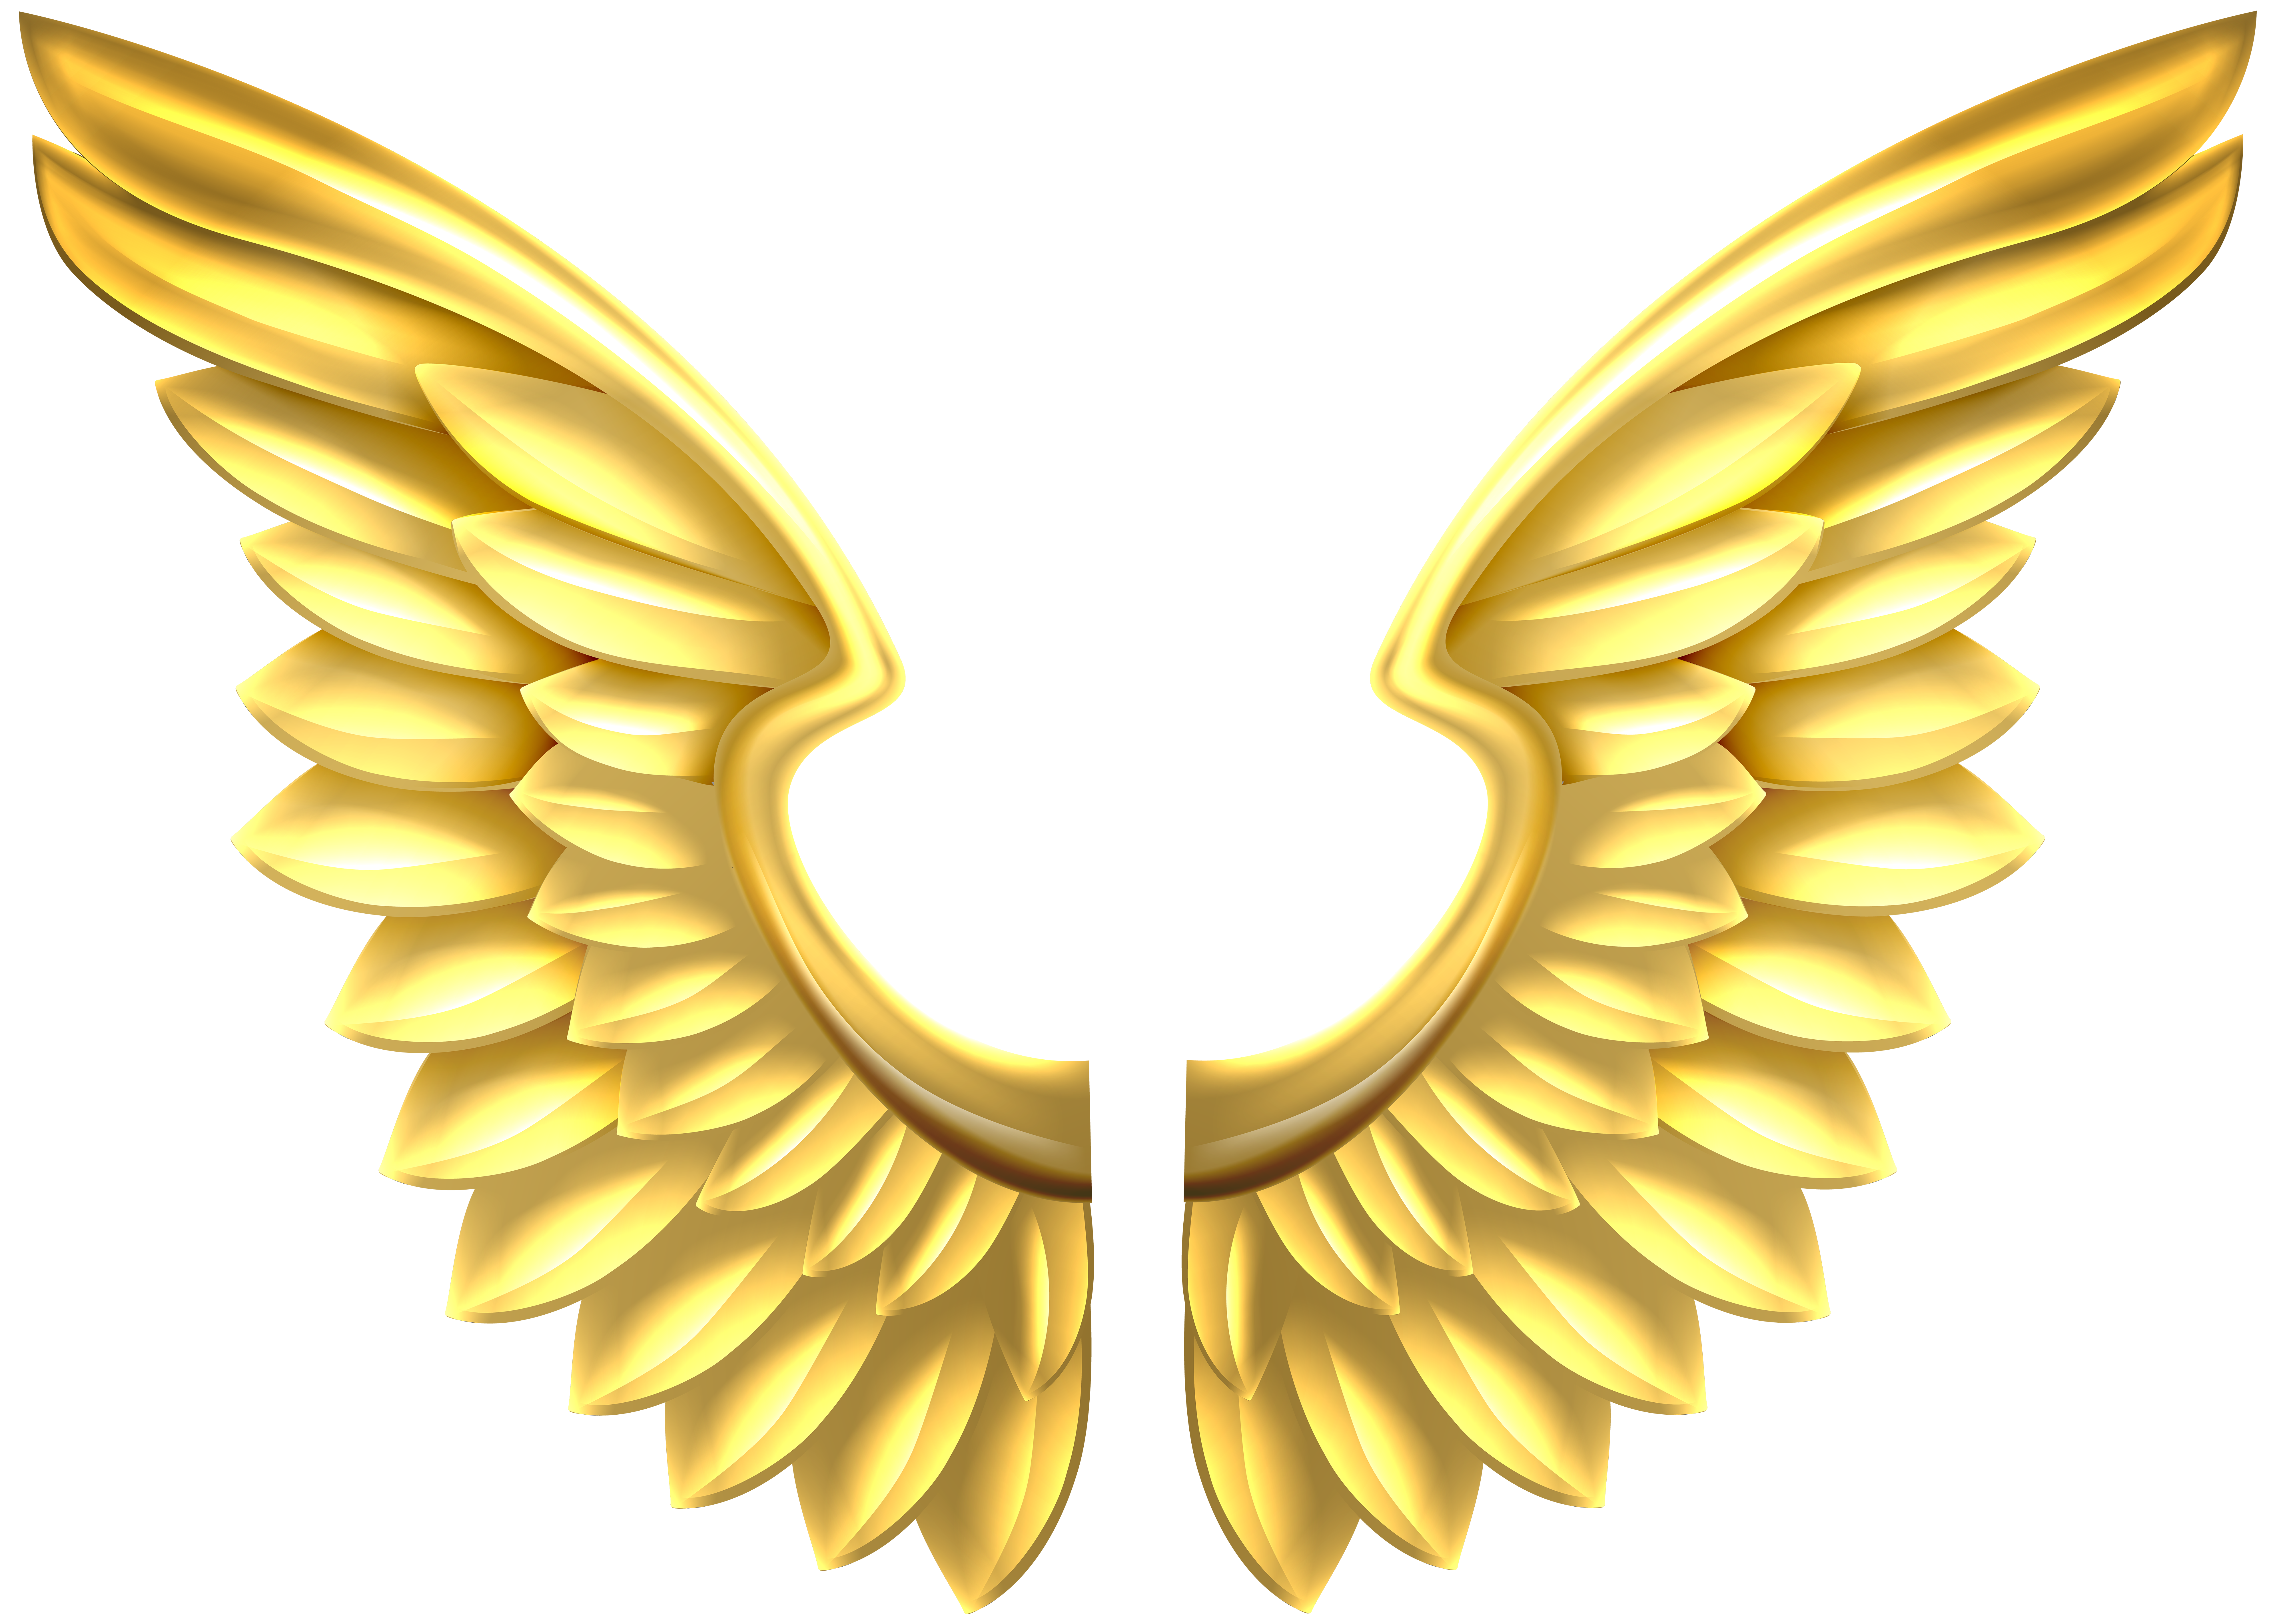 angel wings clipart gold